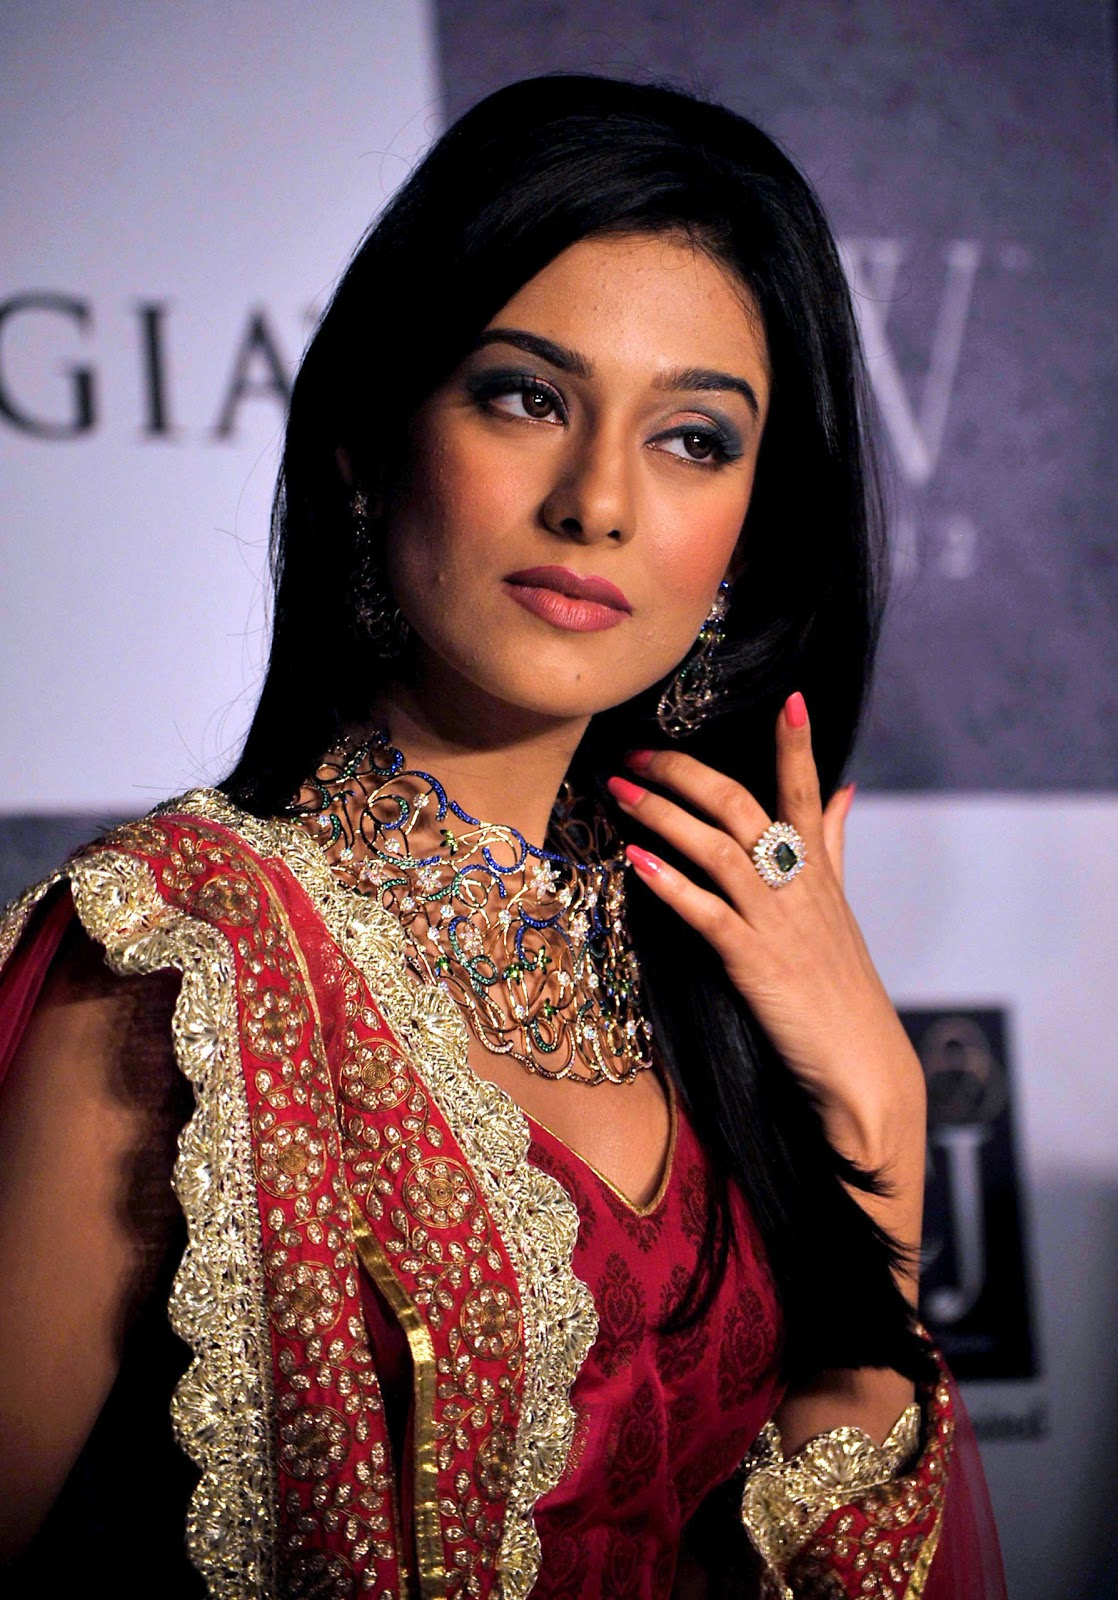 Amrita Rao Looks Hot In Saree At India International Jewellery Week (IIJW) 2012